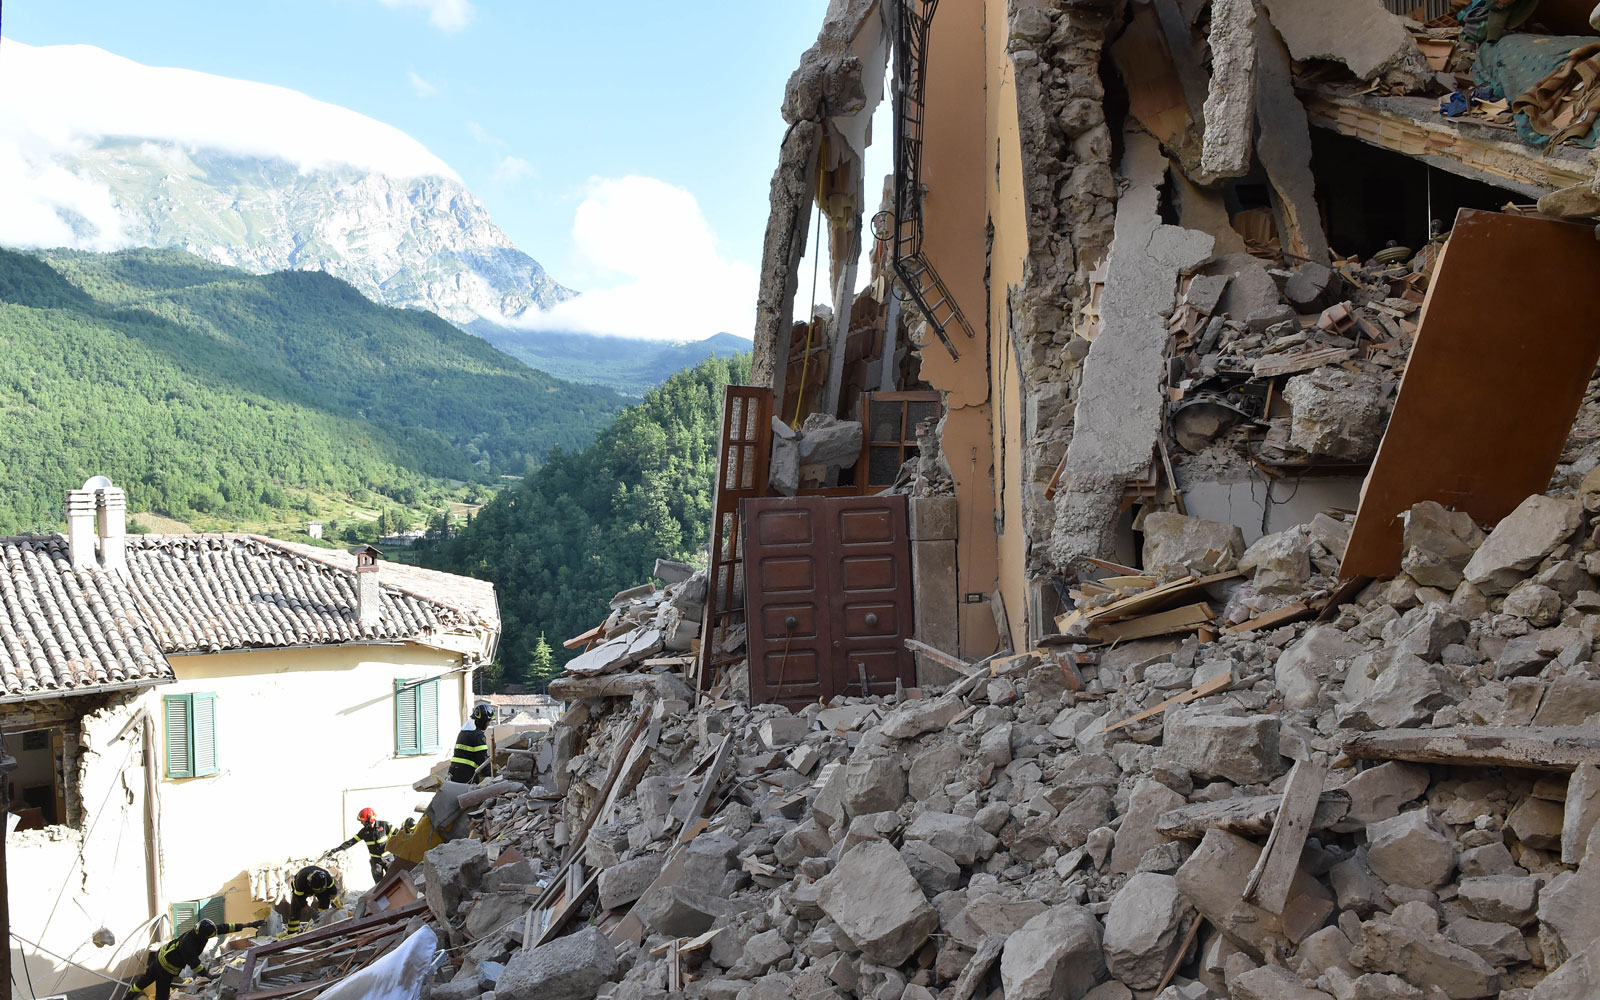 6.2-magnitude Earthquake Devastates Towns in Central Italy